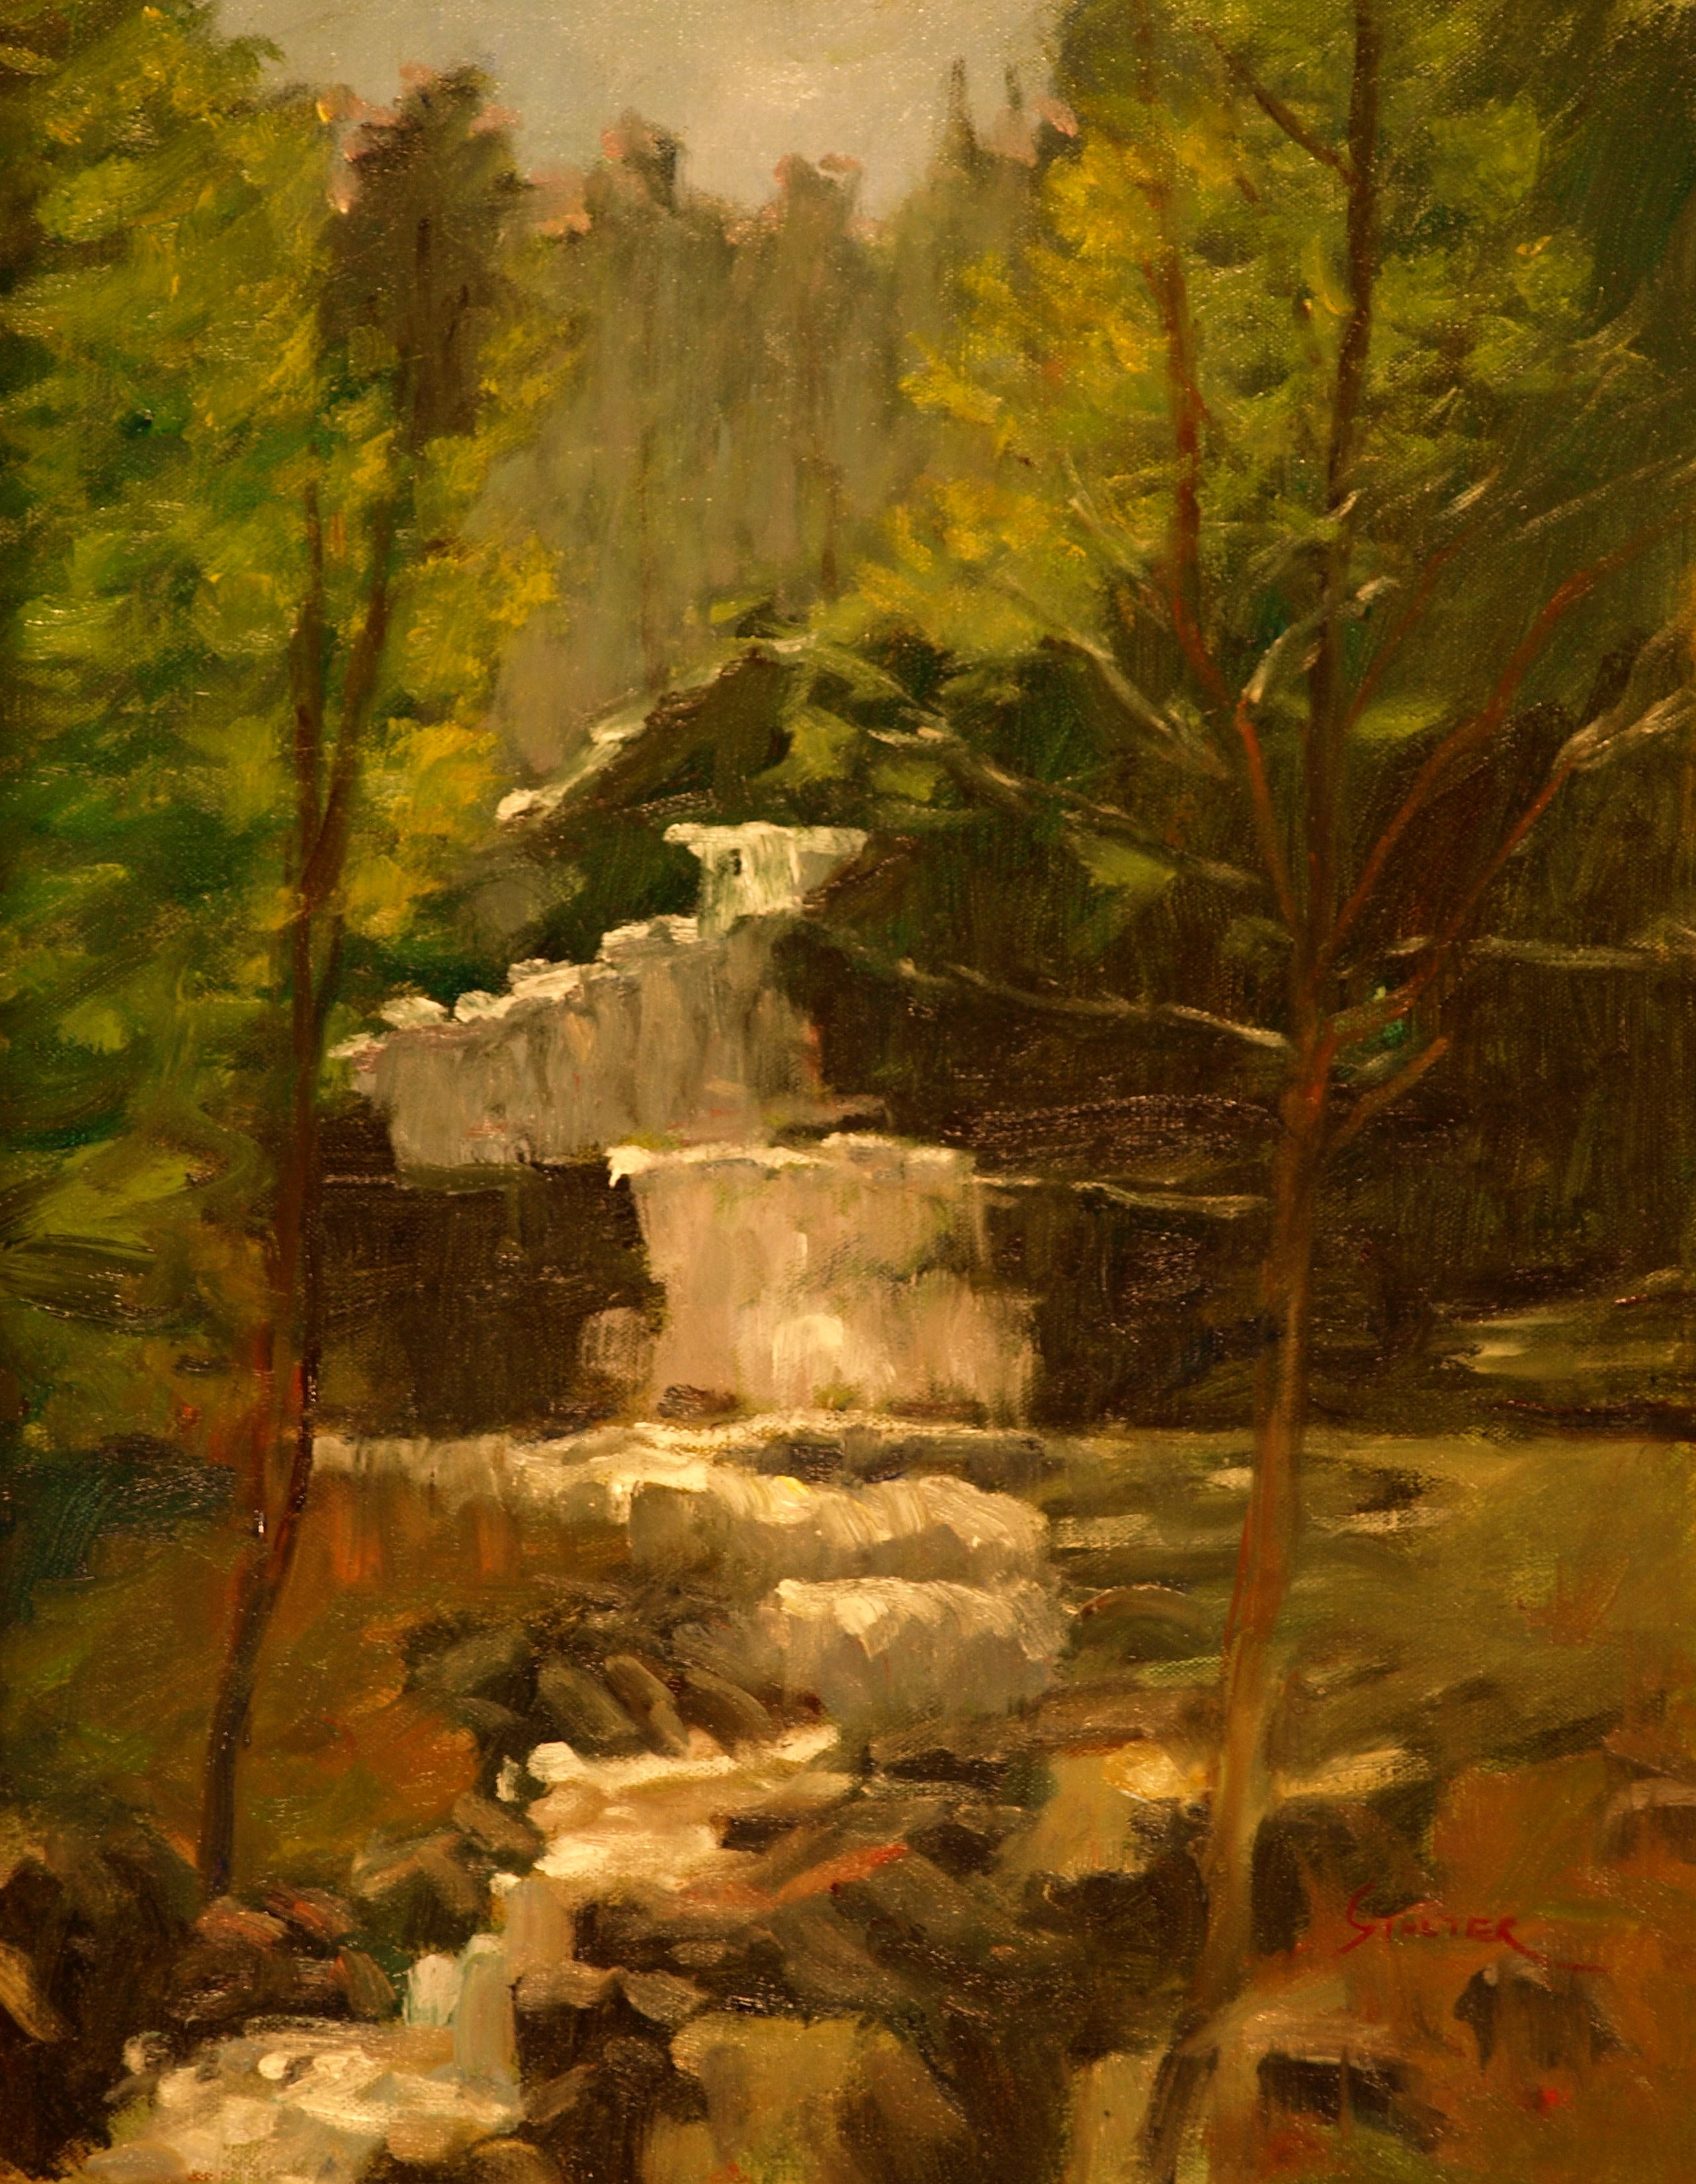 Kent Falls, Oil on Canvas, 20 x 16 Inches, by Richard Stalter, $450